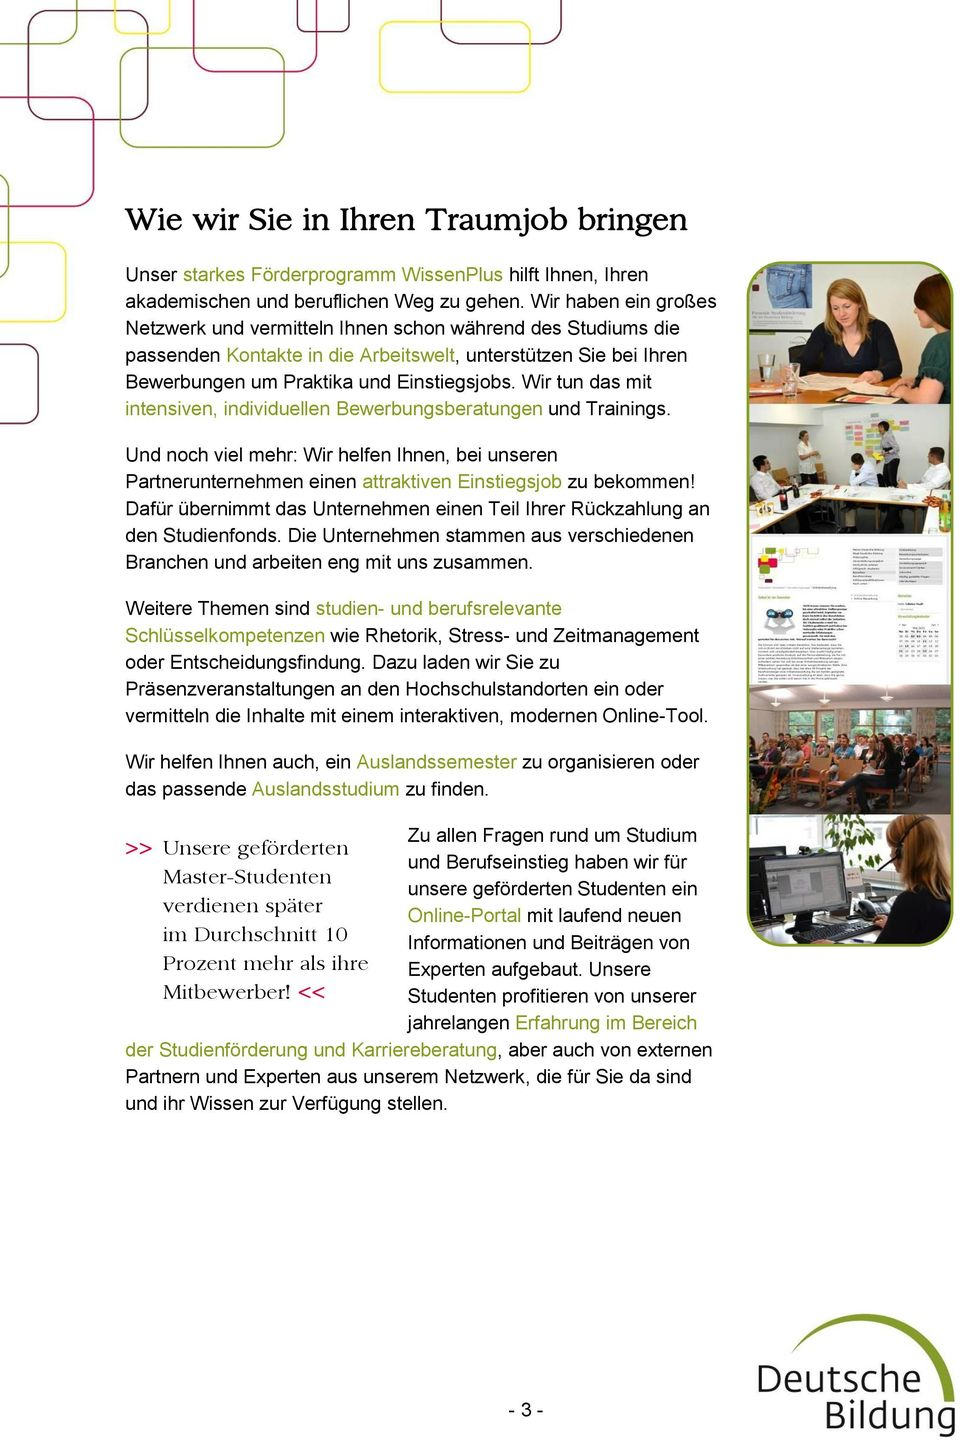 Tolle Karriereberater Lebenslauf Proben Fotos - Entry Level Resume ...